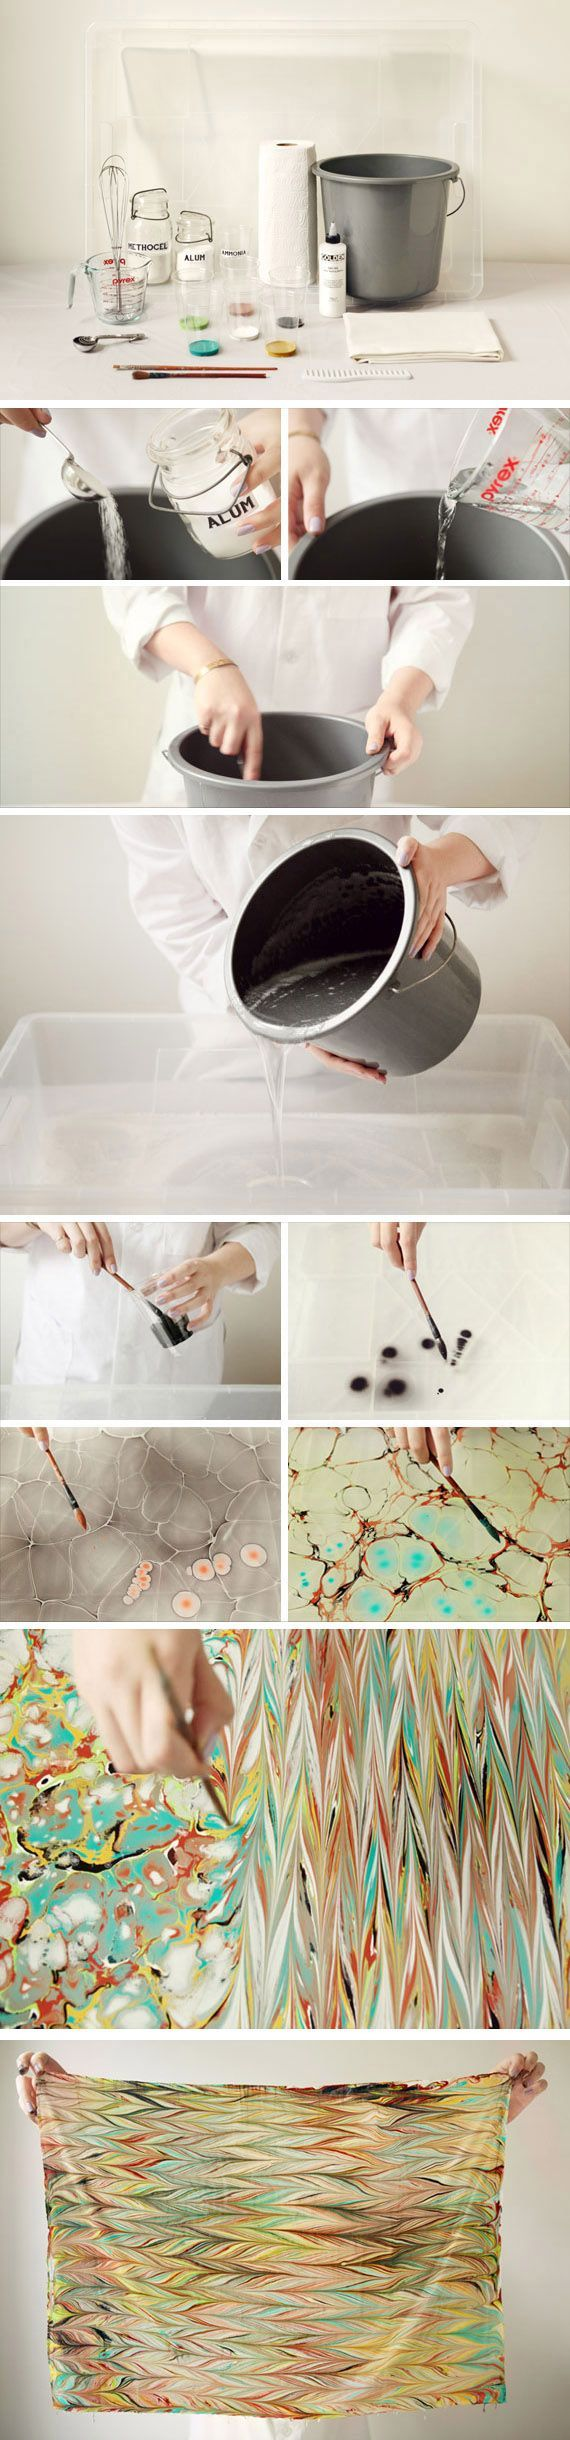 DIY :: Make Your Own Marbled Scarf ( http://www.etsy.com/blog/en/2013/how-to-marbled-scarf/ )